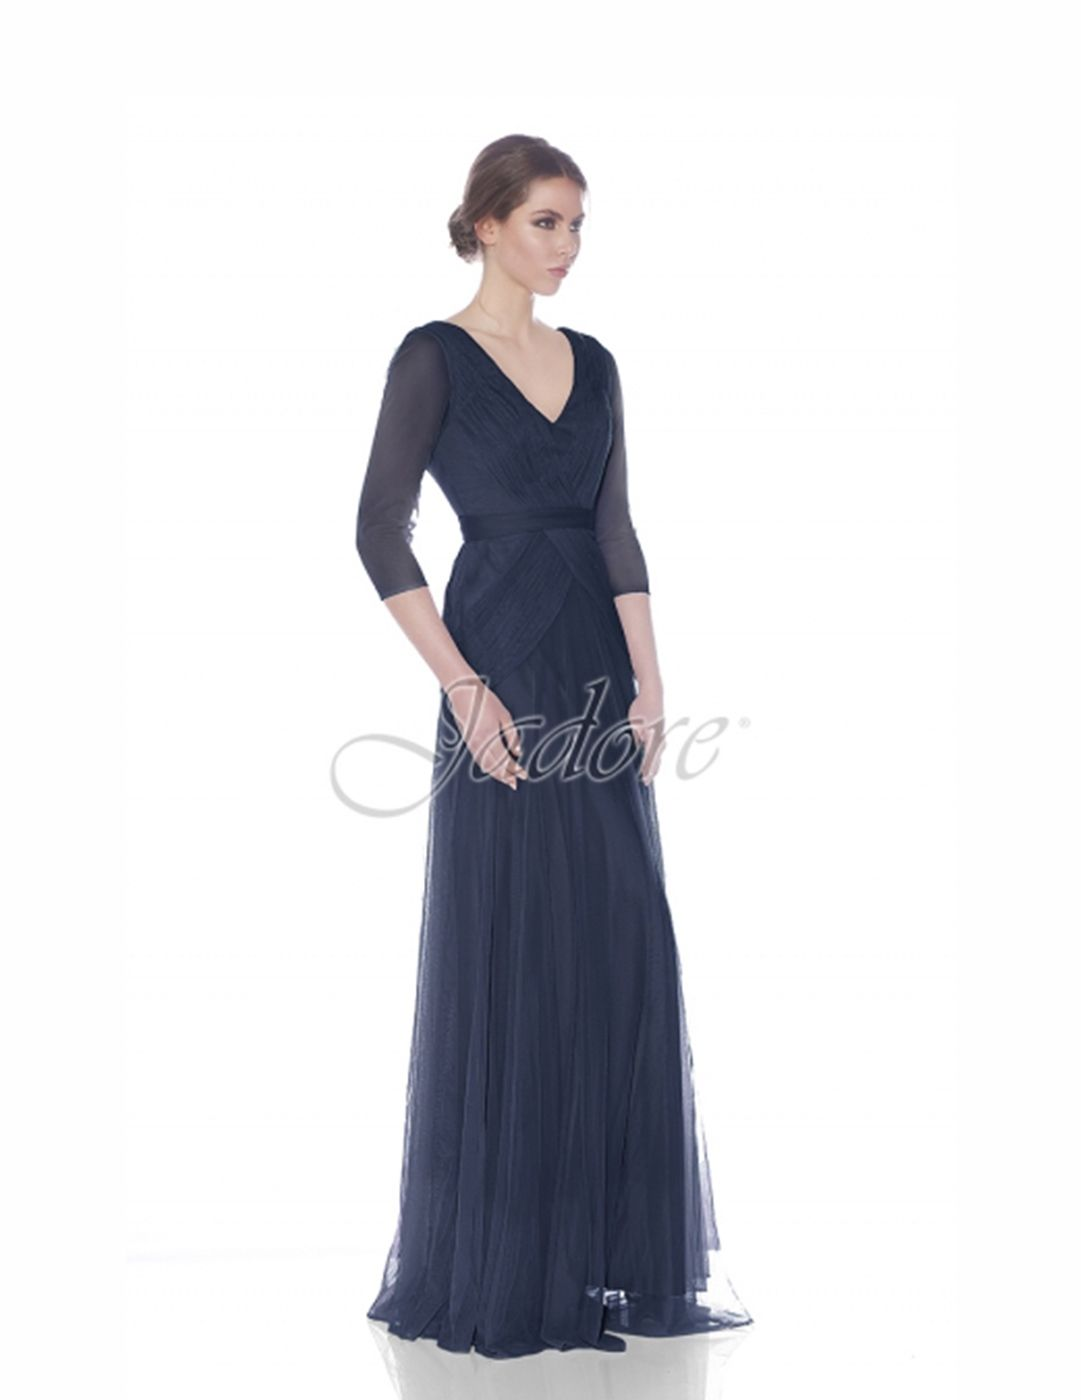 ac748bed645 View Dress - Jadore J7 Collection - J7012